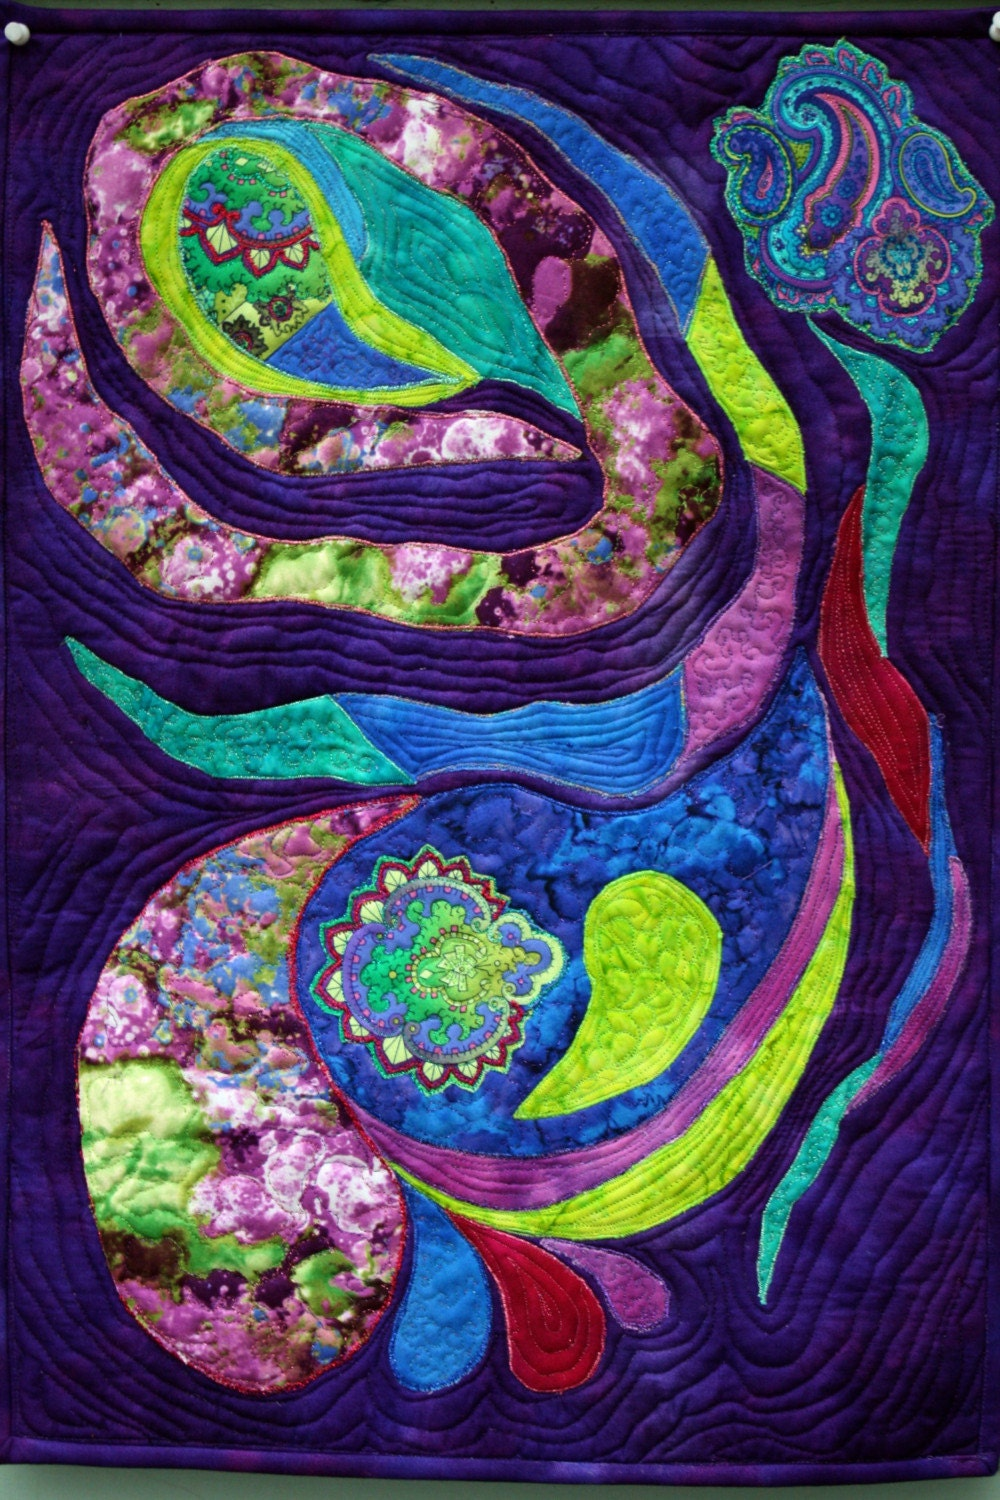 Applique Art Quilt Abstract Wall Hanging In Purple Blue And